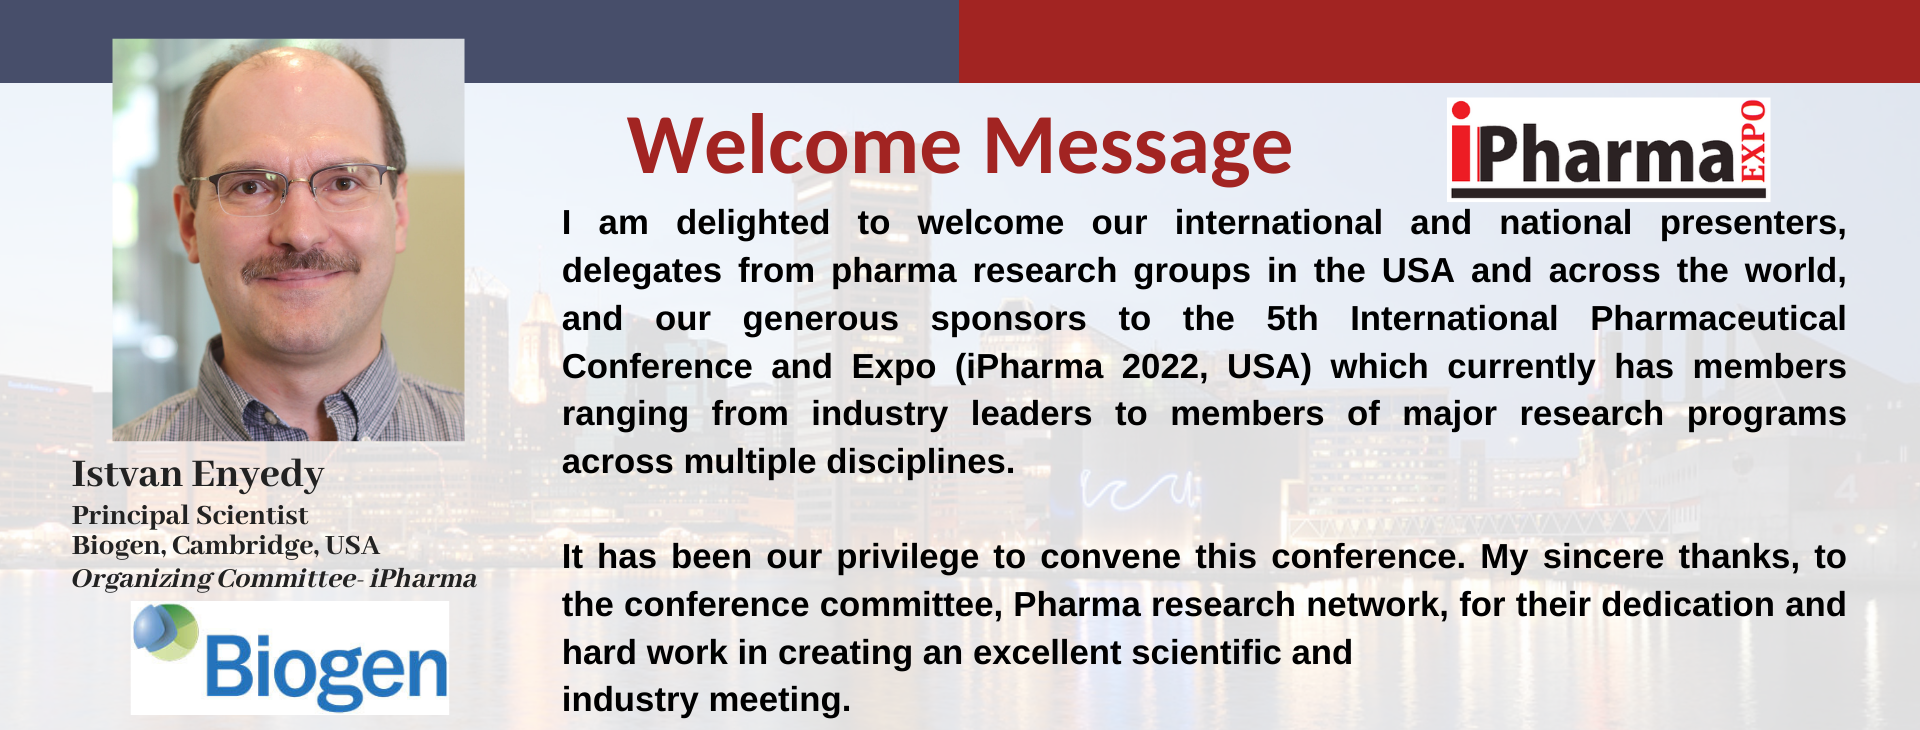 iPharma welcome message